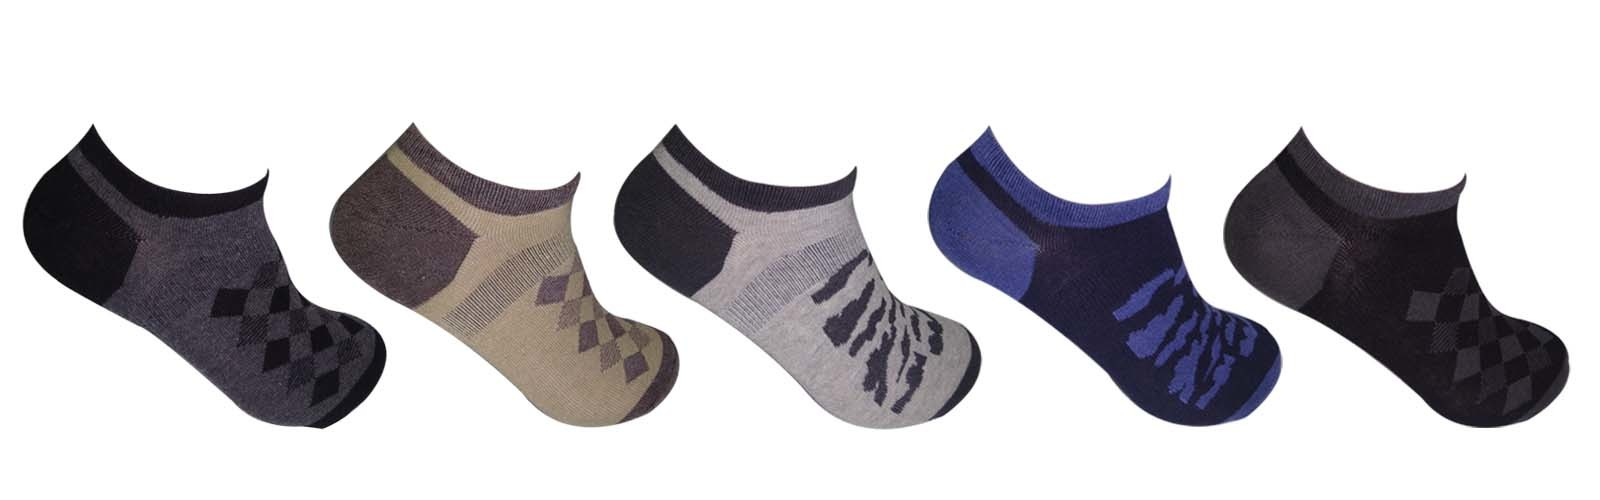 SNEAKERS SOLID LOAFER SOCKS